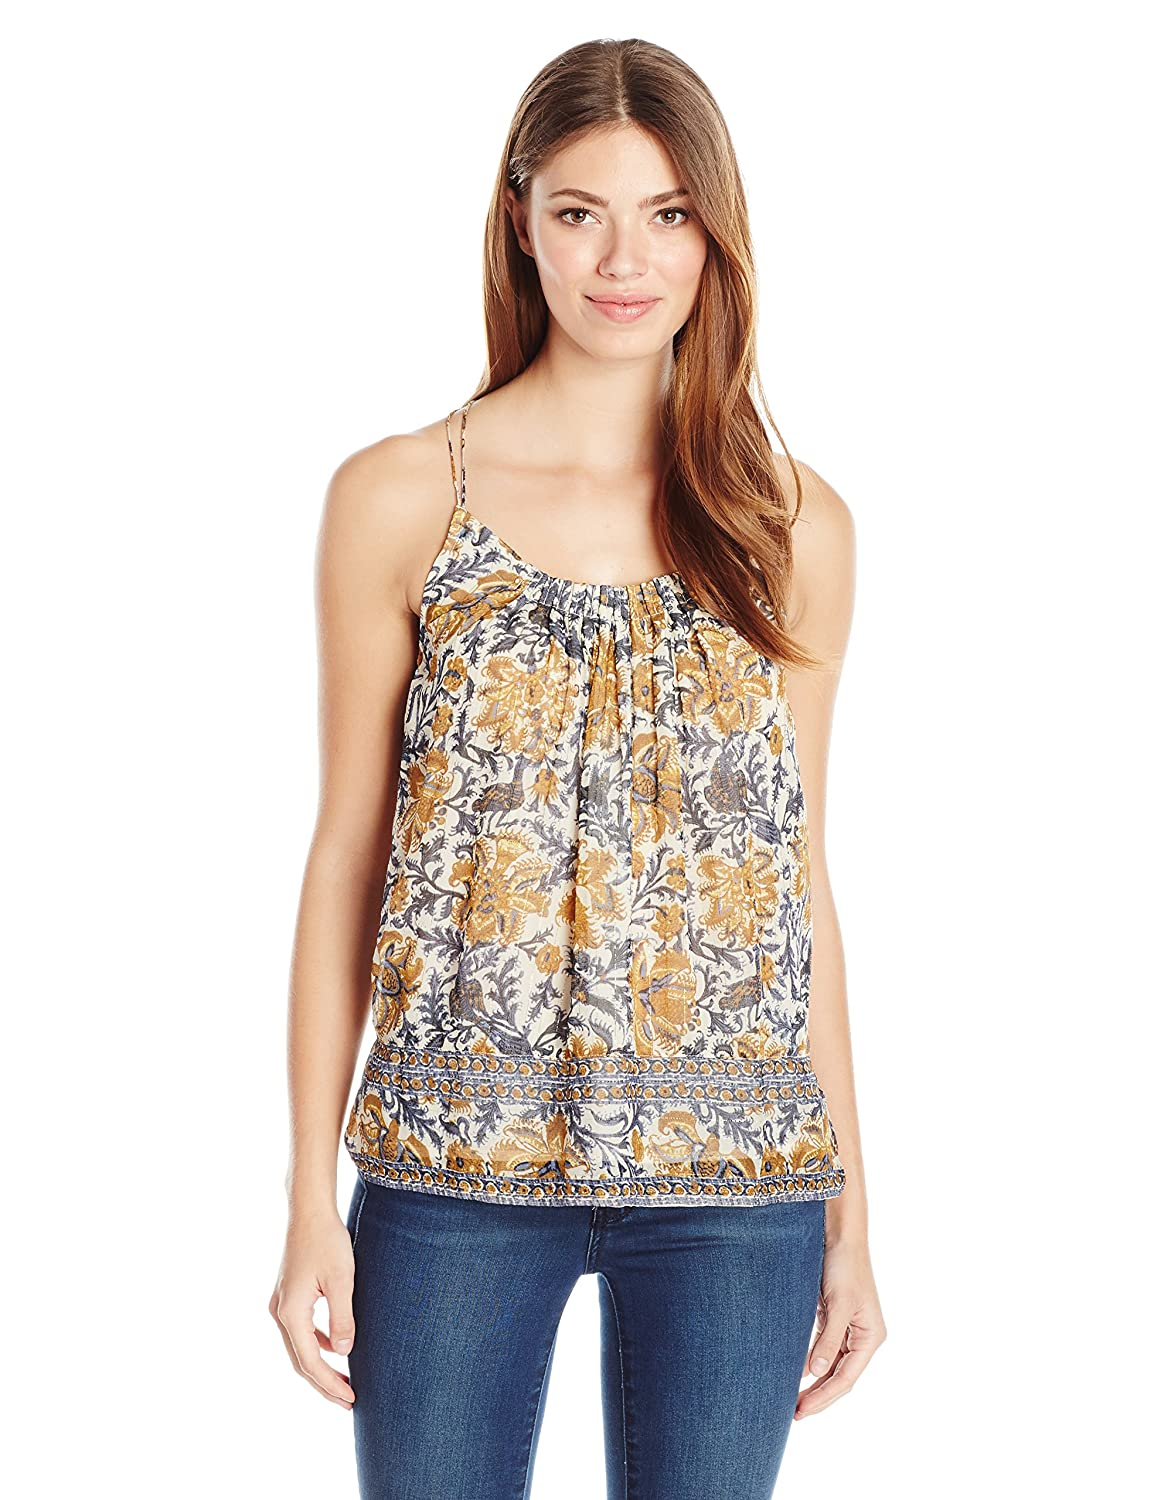 Natural Multi Lucky Brand Womens Yellow Floral Tank Top Tank Top Cami Shirt